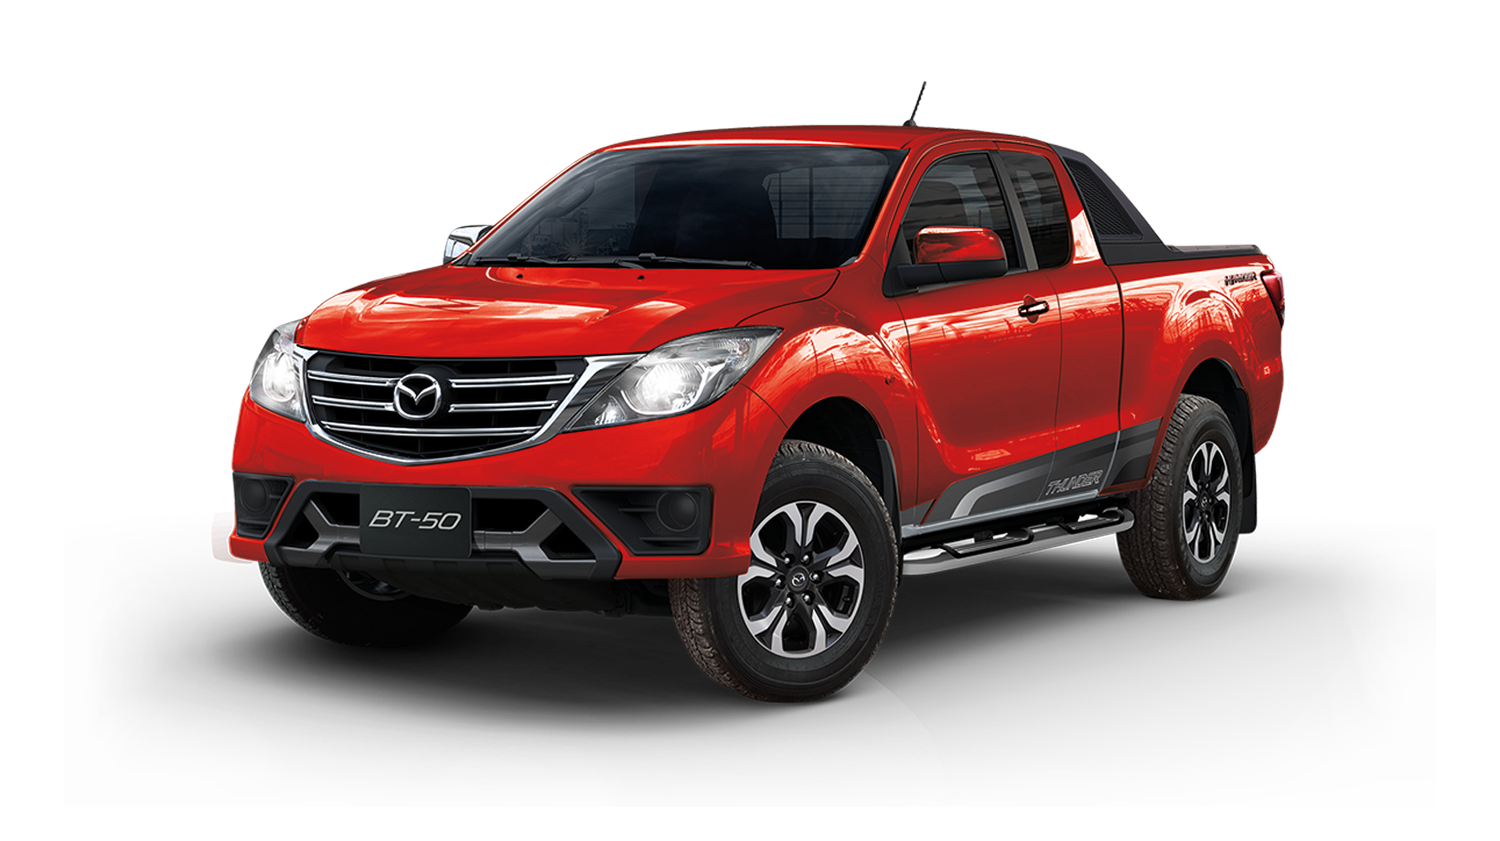 70 The Best All New Mazda Bt 50 2020 Configurations